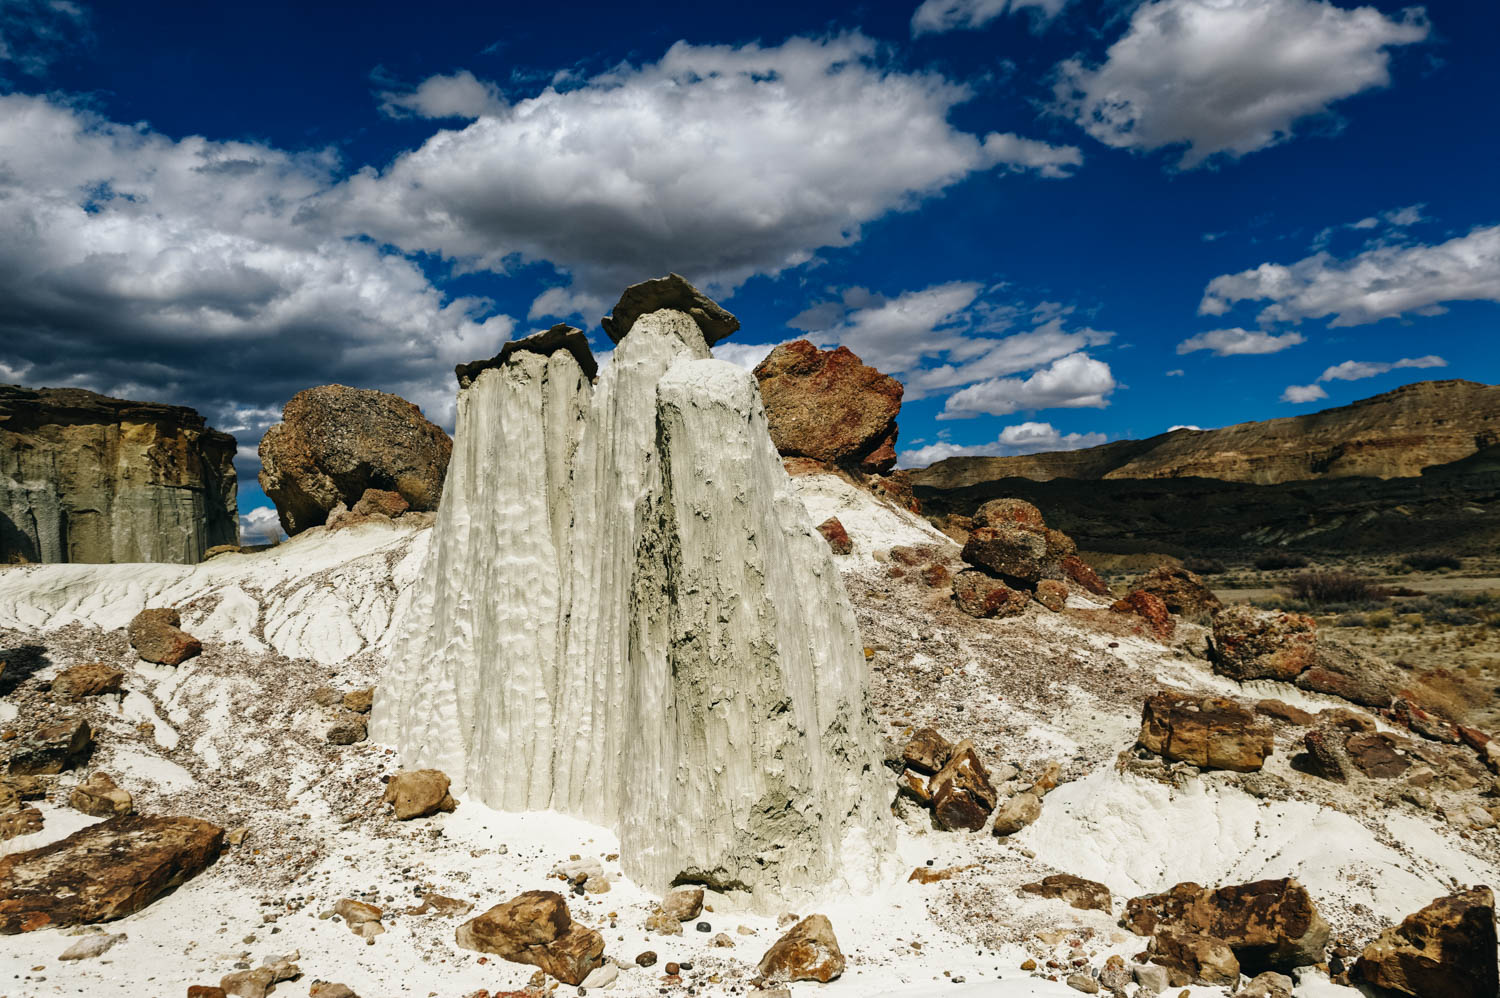 The soft entrada sandstone is pure white in color and forms hoodoos that are often topped either by dark sandstone blocks or unusual boulders of purple conglomerate, composed of small pebbles bonded together.